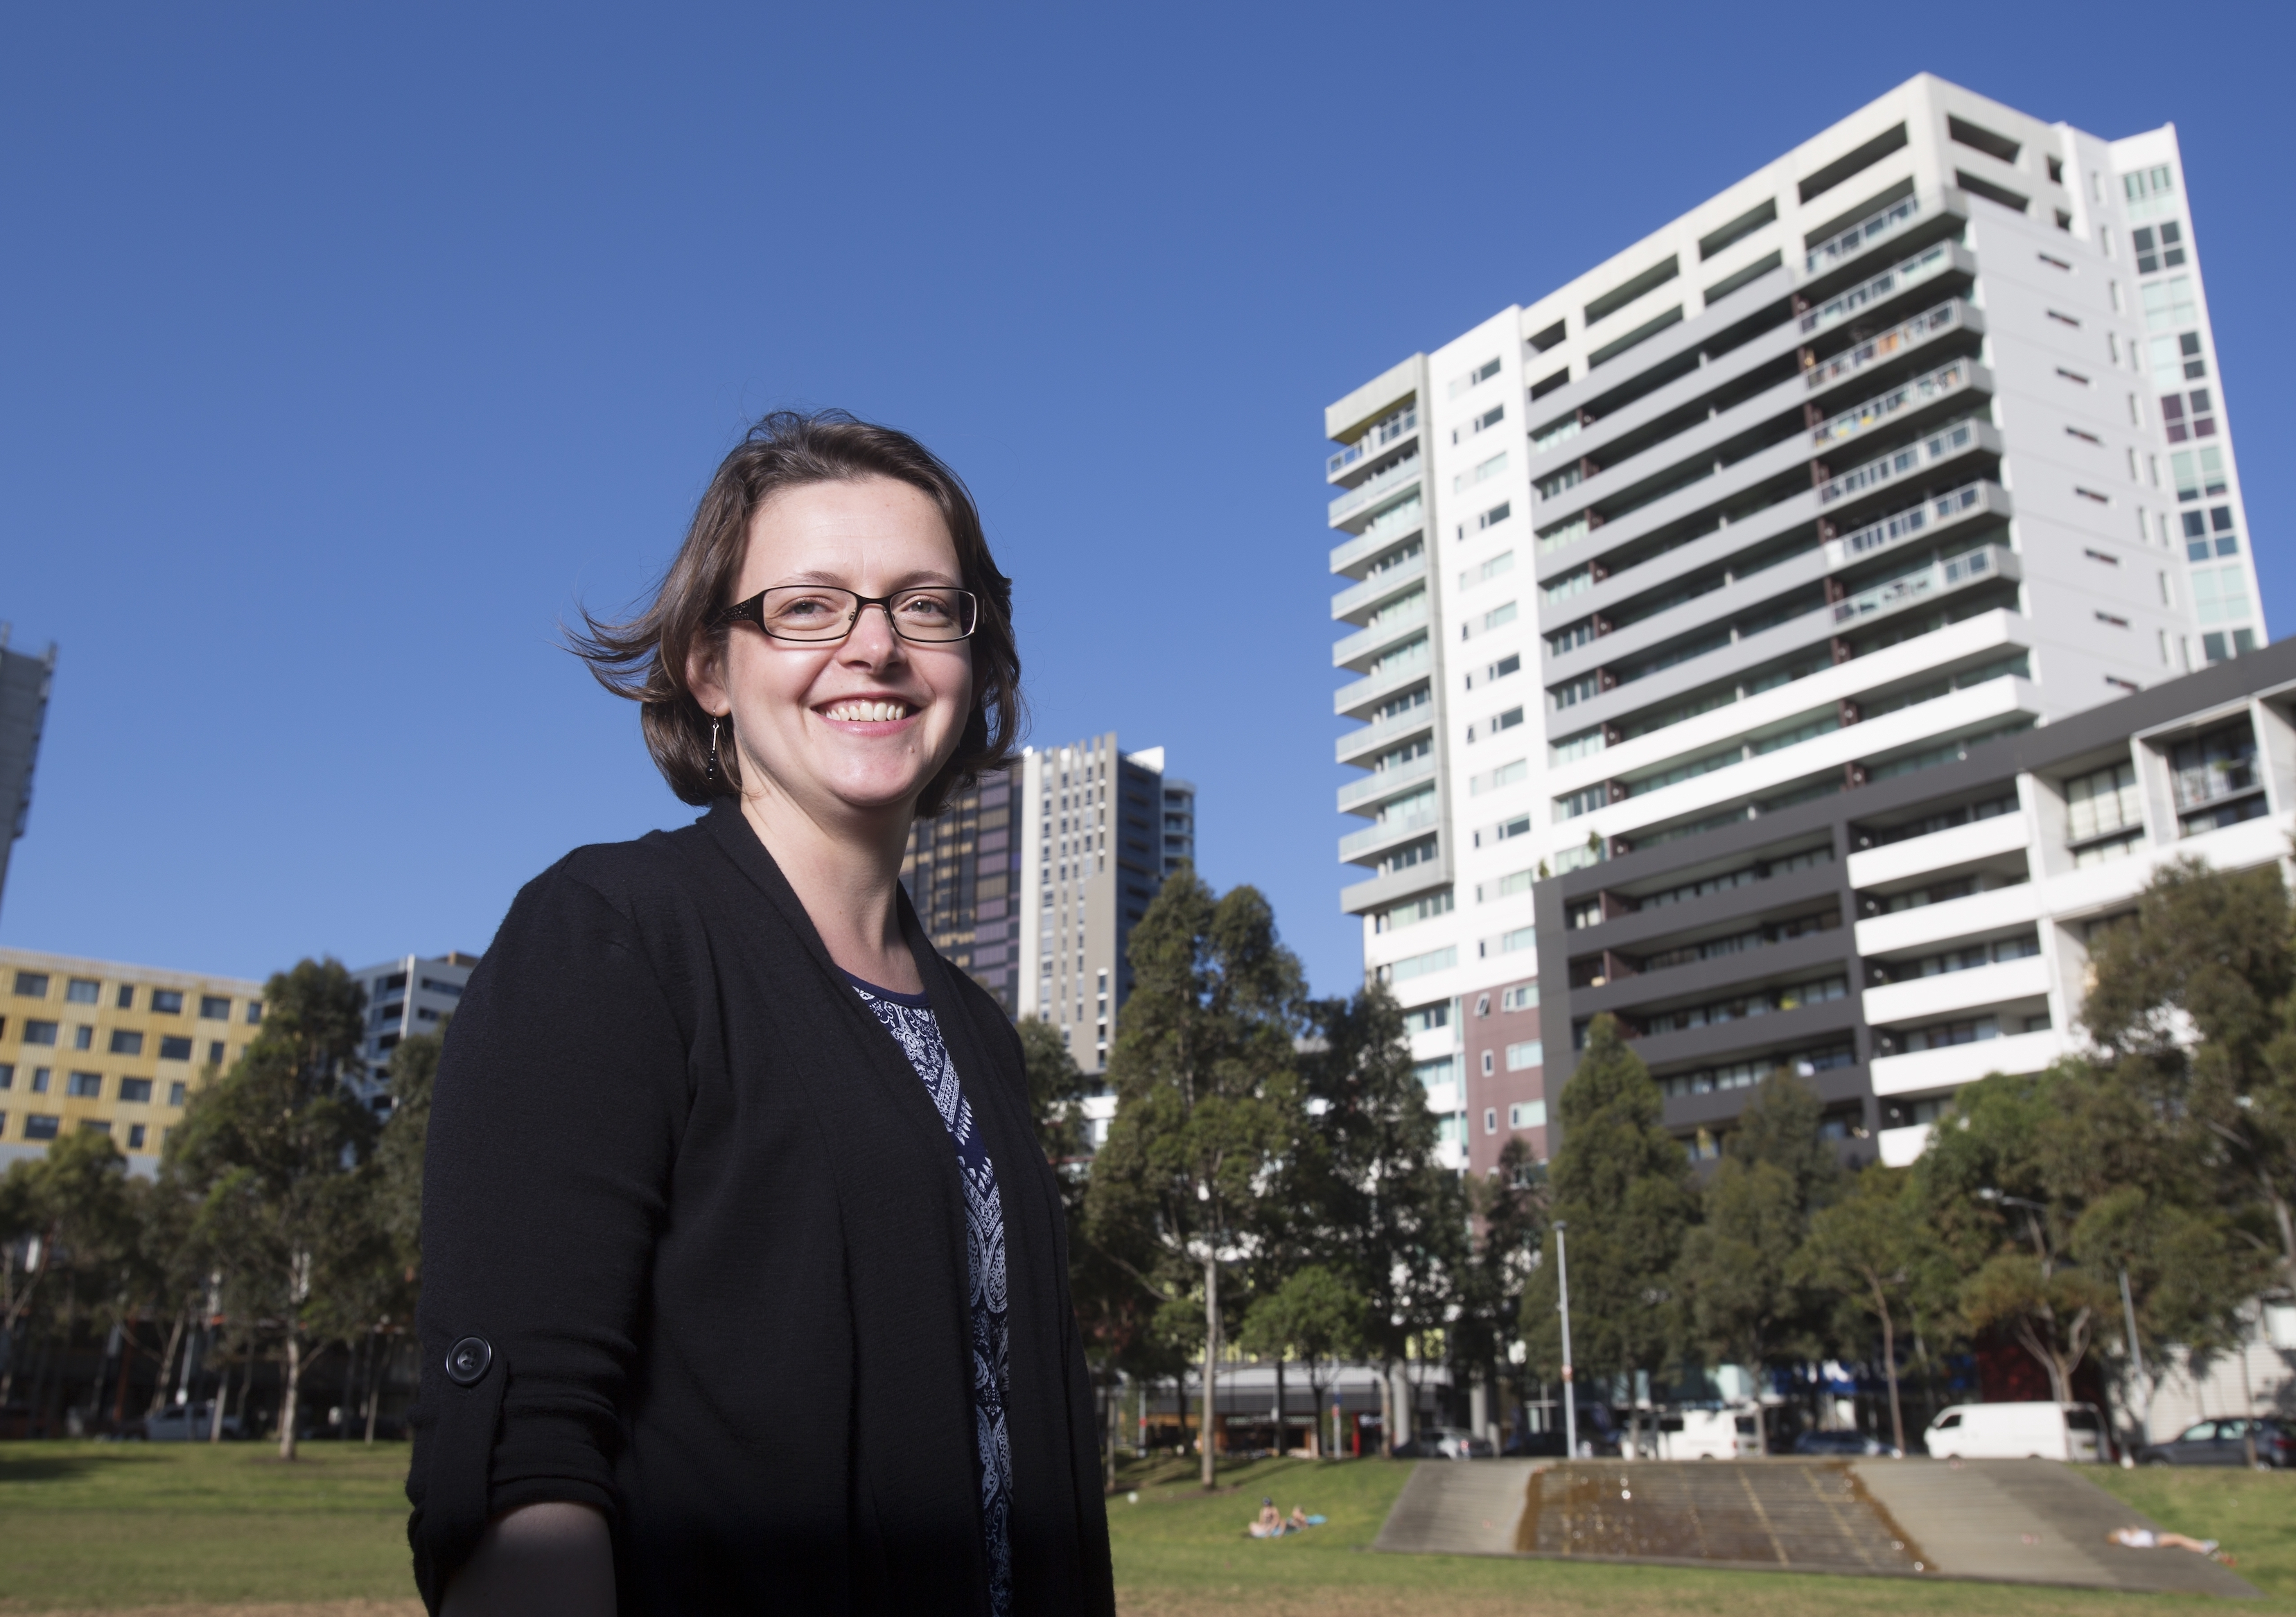 Associate Professor Hazel Easthope from the City Futures Research Centre at UNSW Built Environment